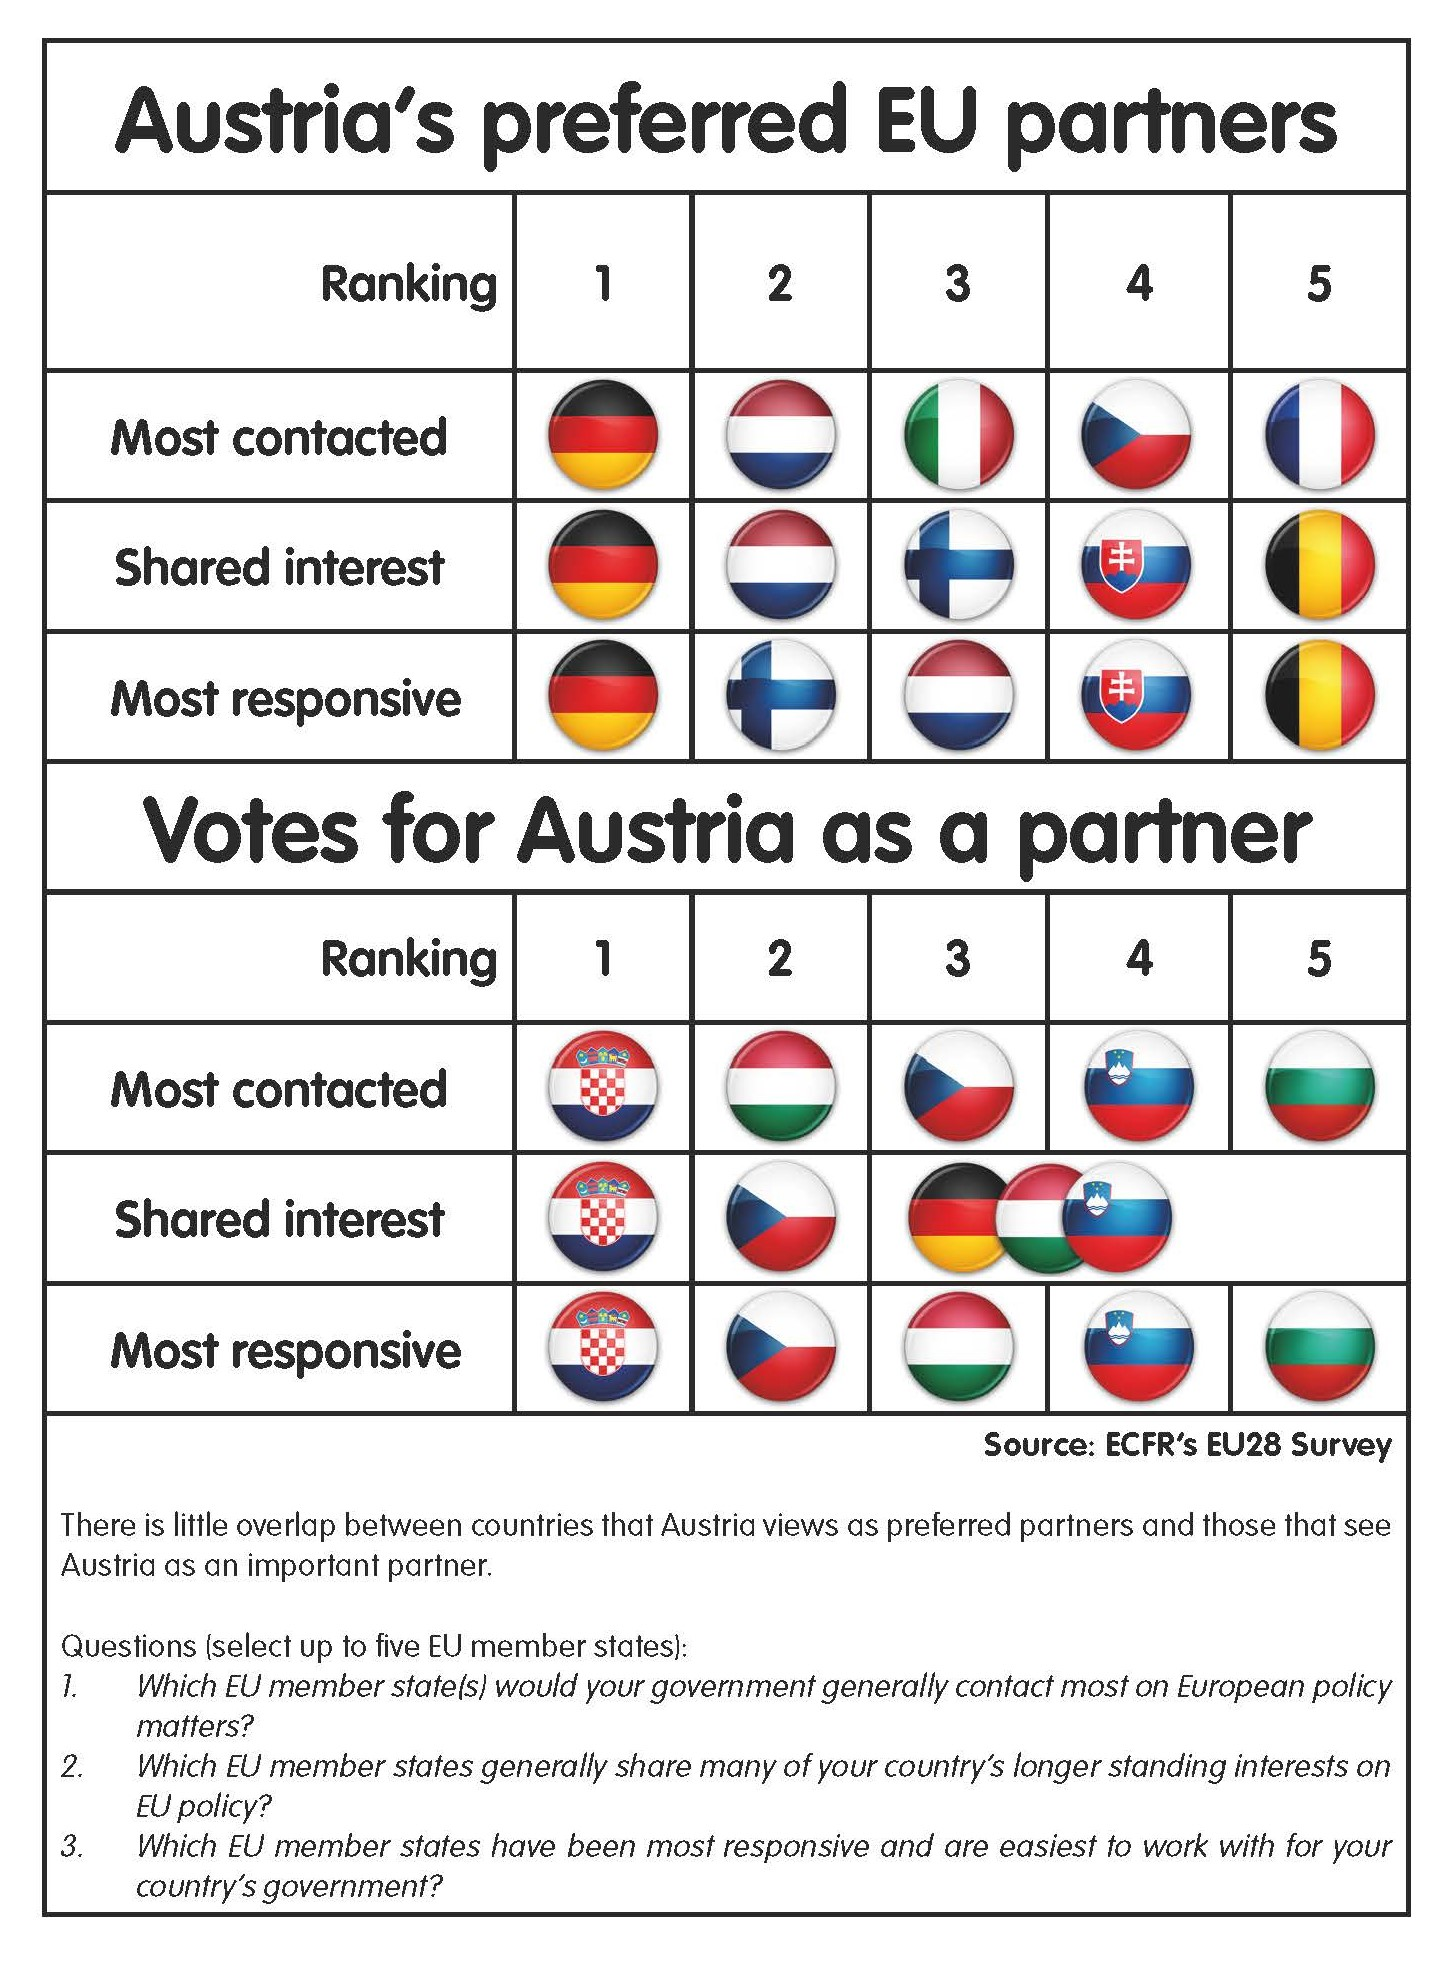 Table: Austria's preferred EU partners